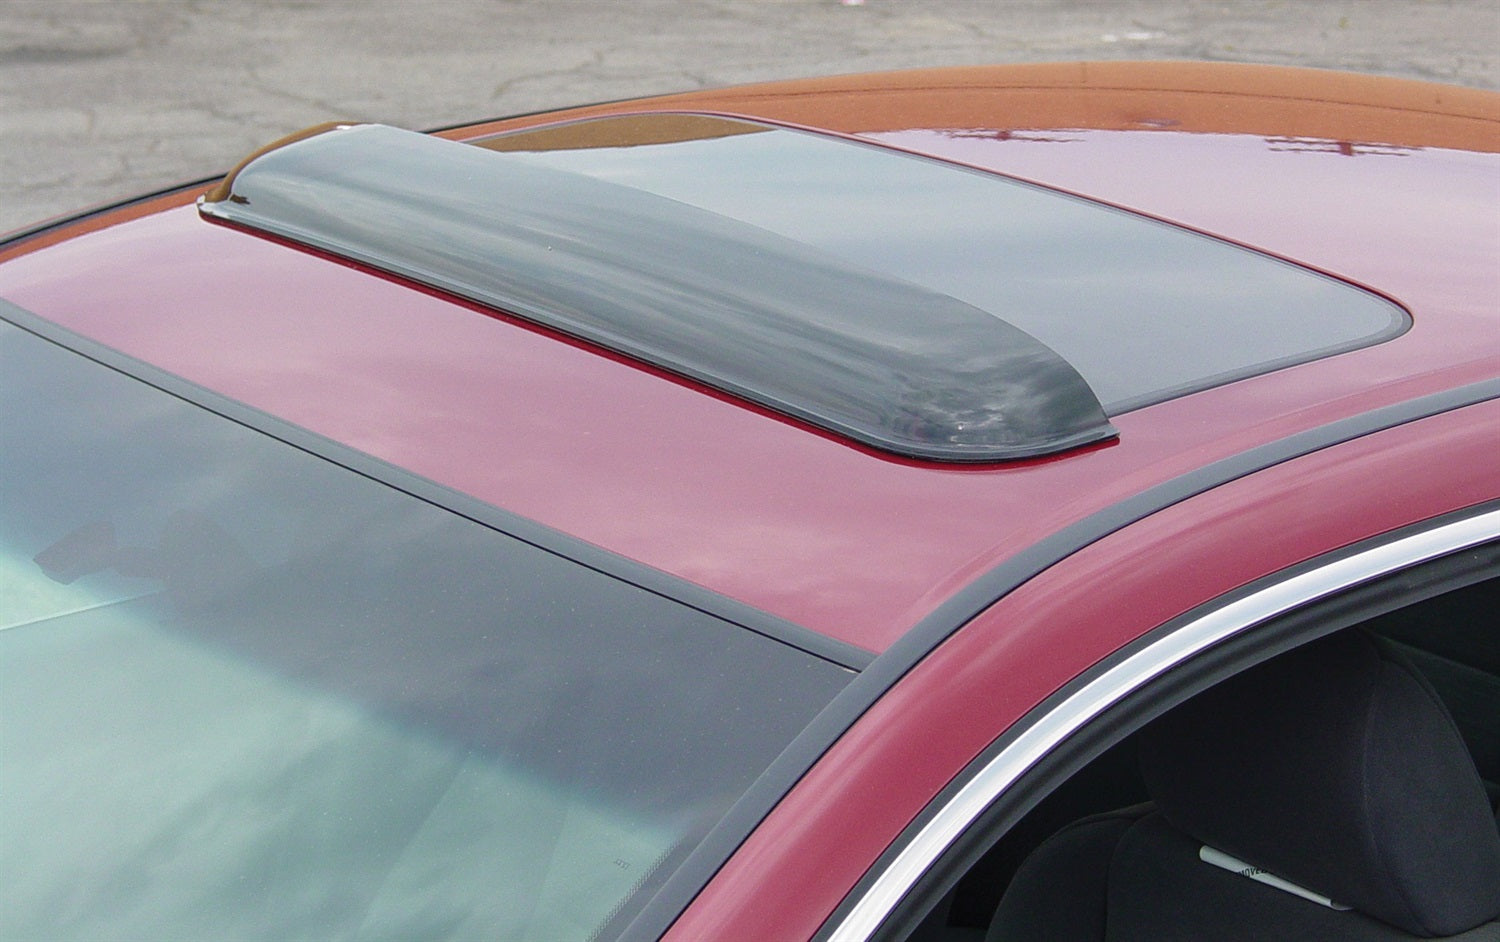 2008 Honda Fit Sunroof Wind Deflector